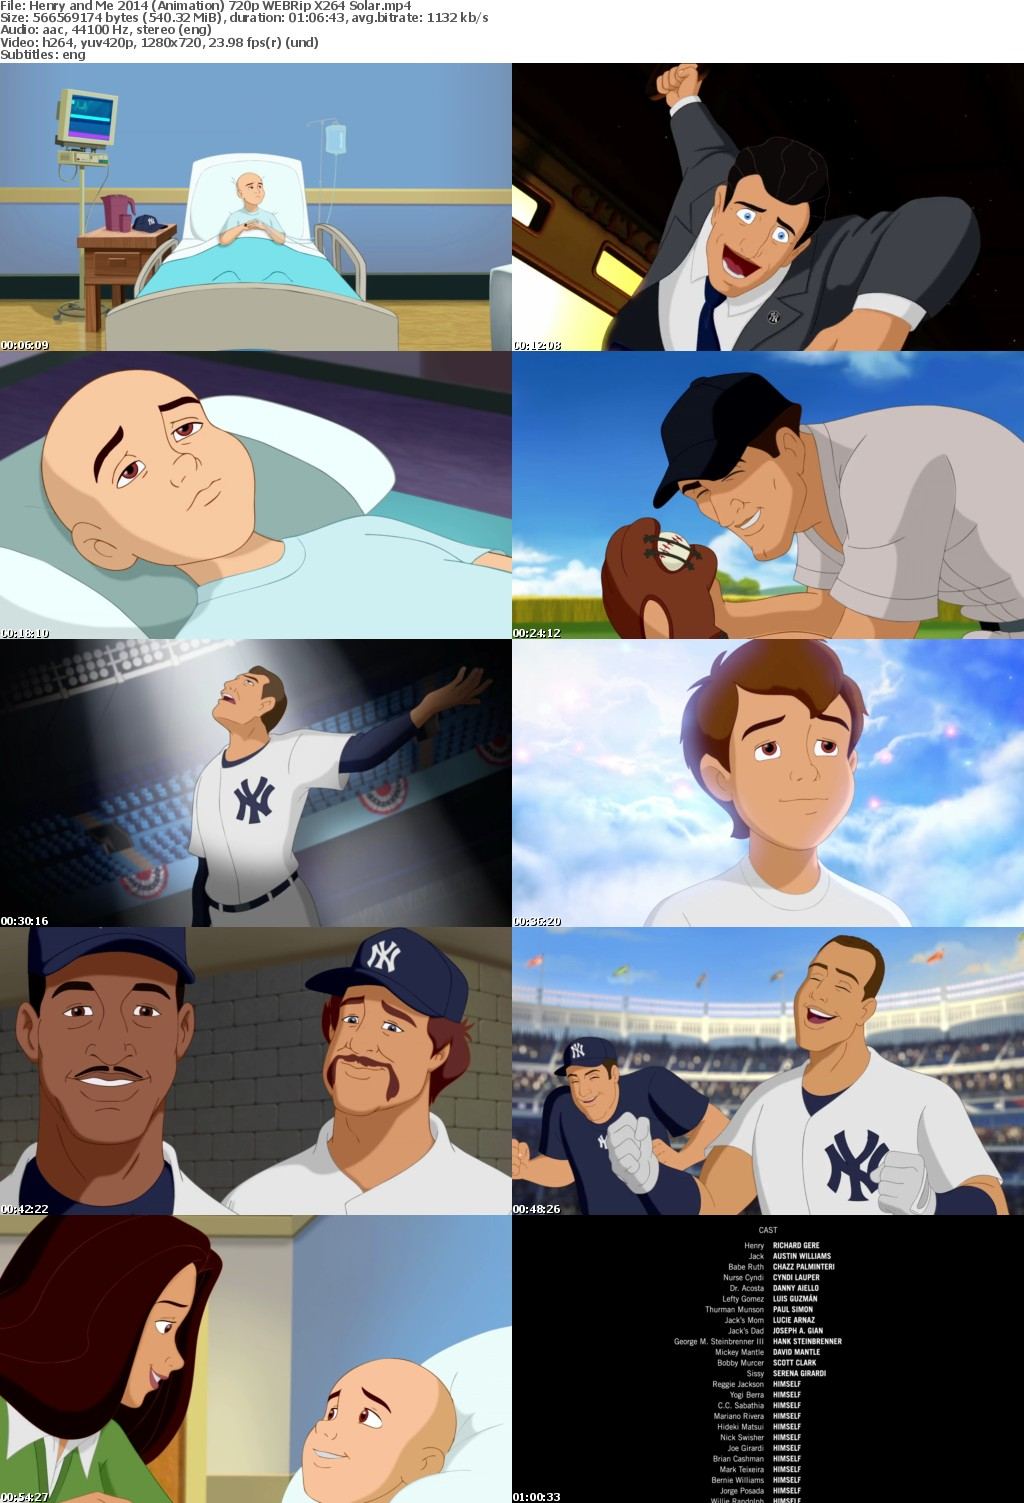 Henry and Me 2014 (Animation) 720p WEBRip X264 Solar